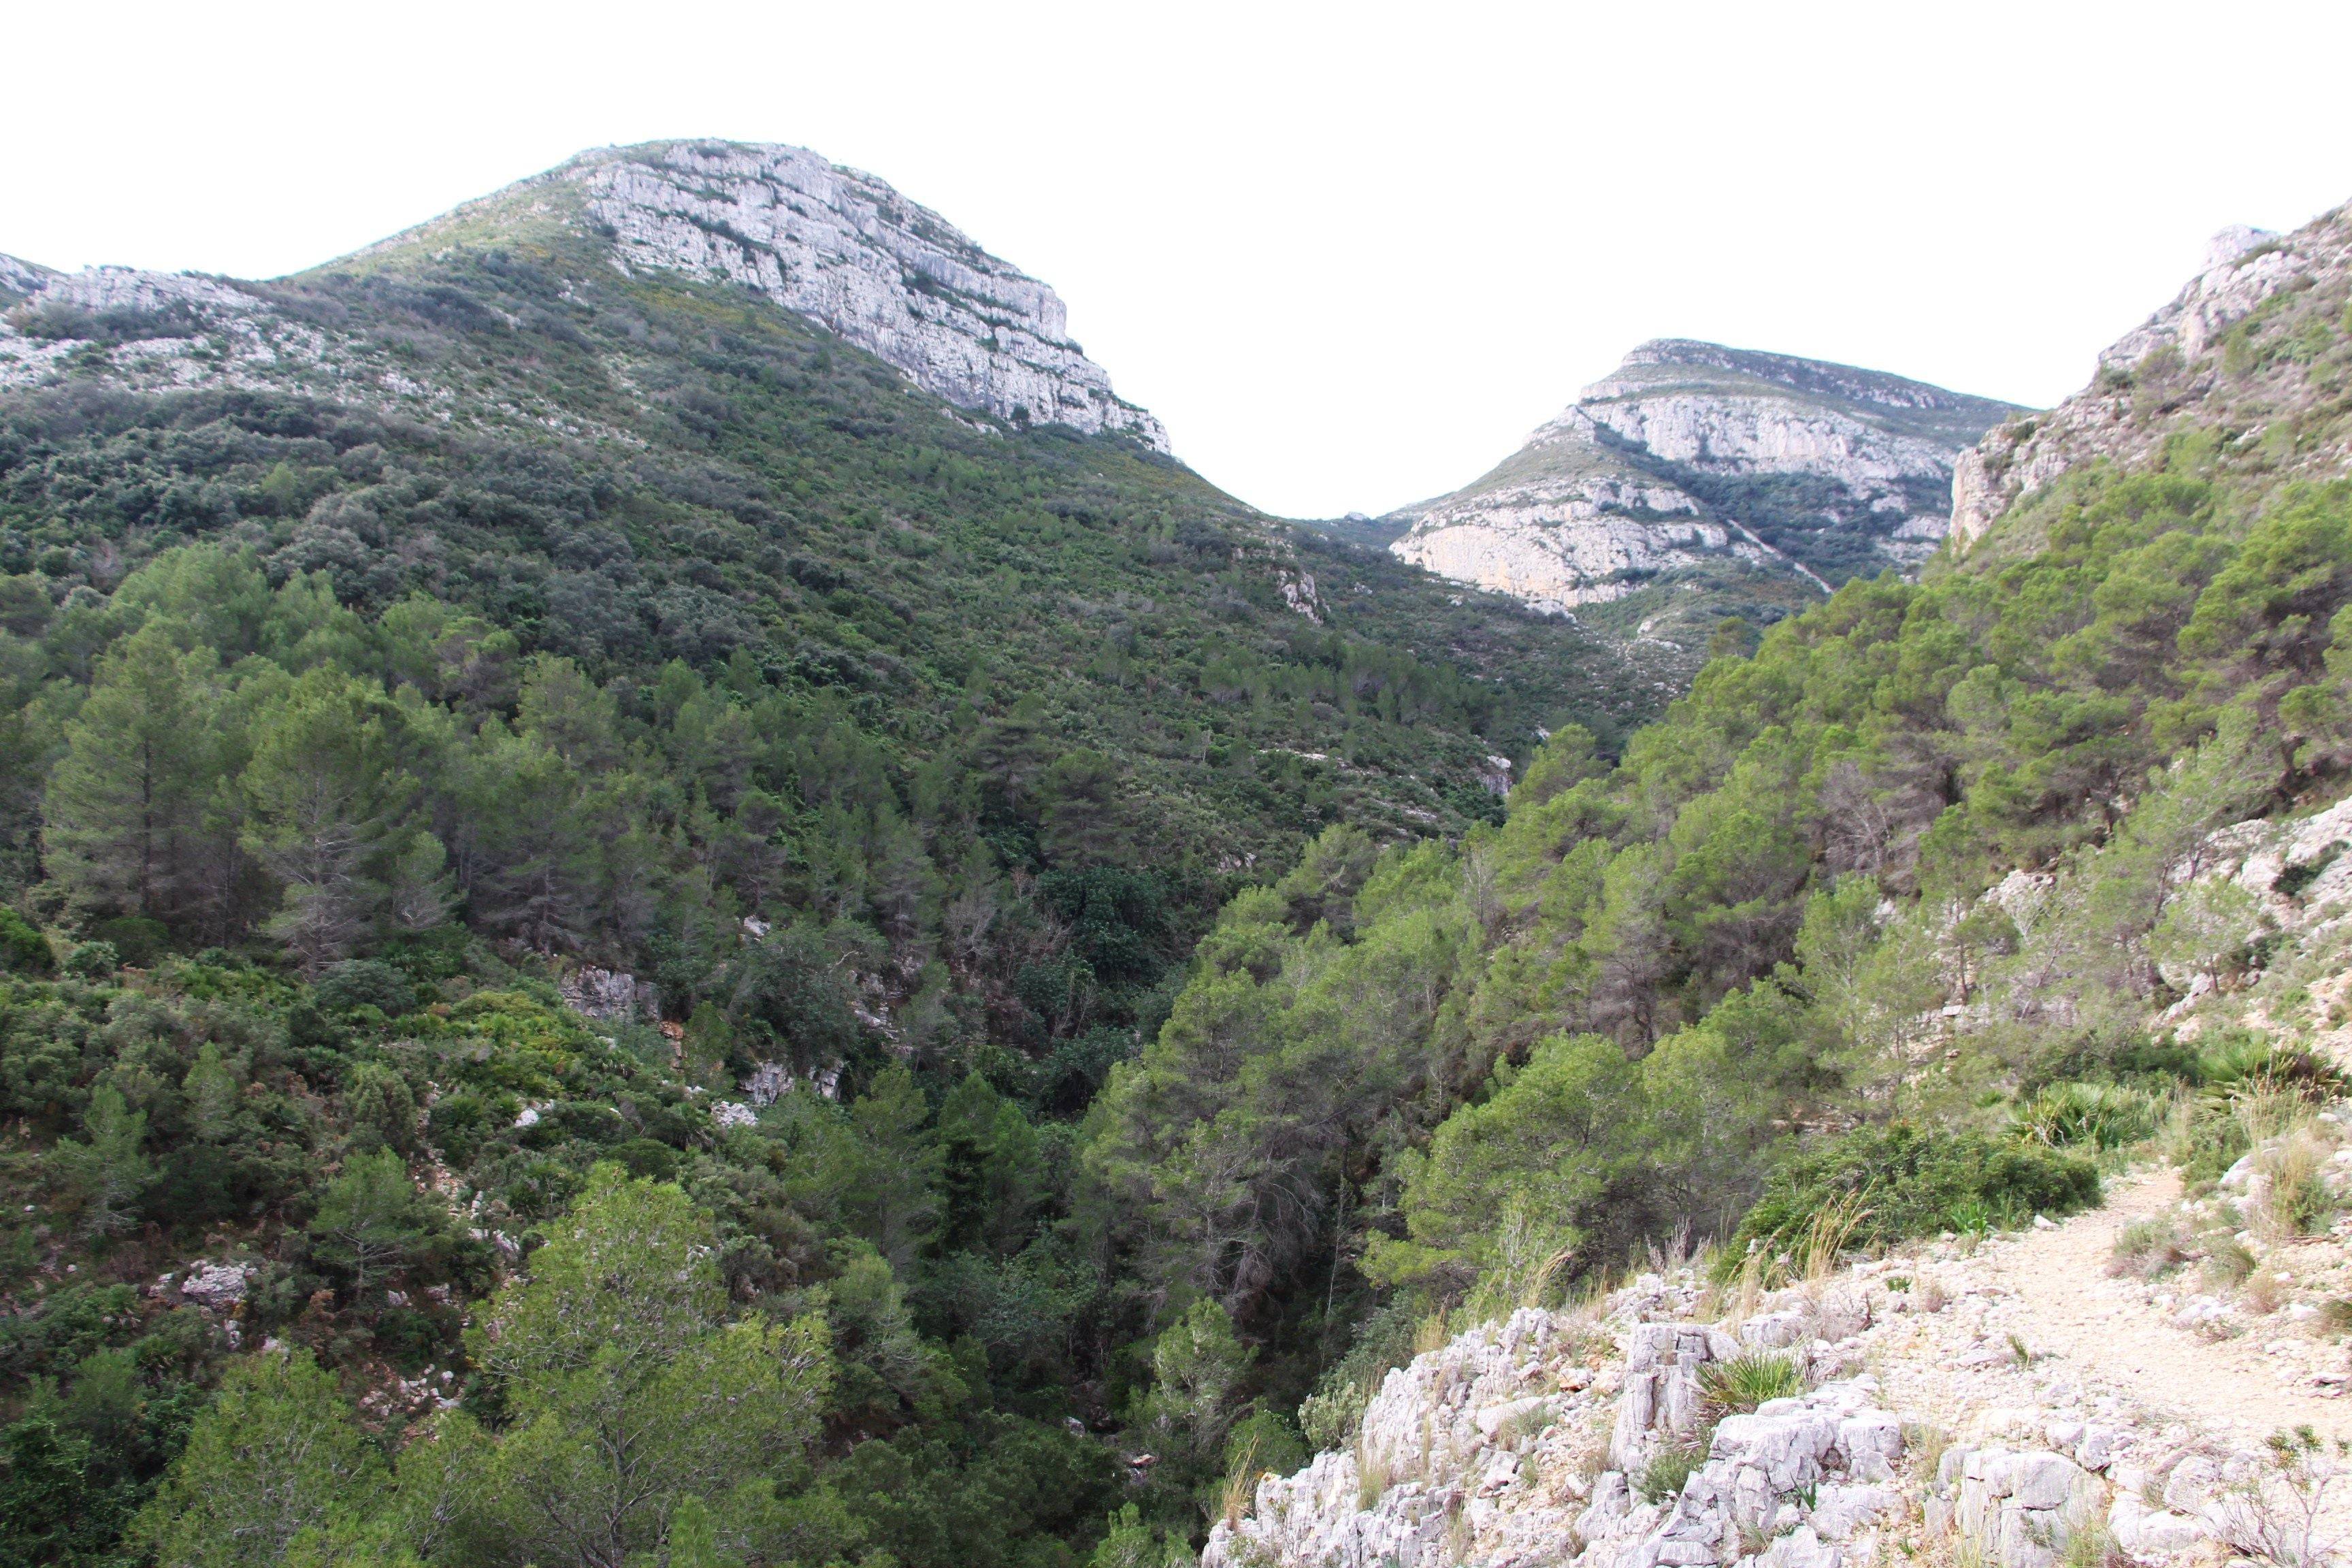 Canyon in Ruta La Font de Lloret